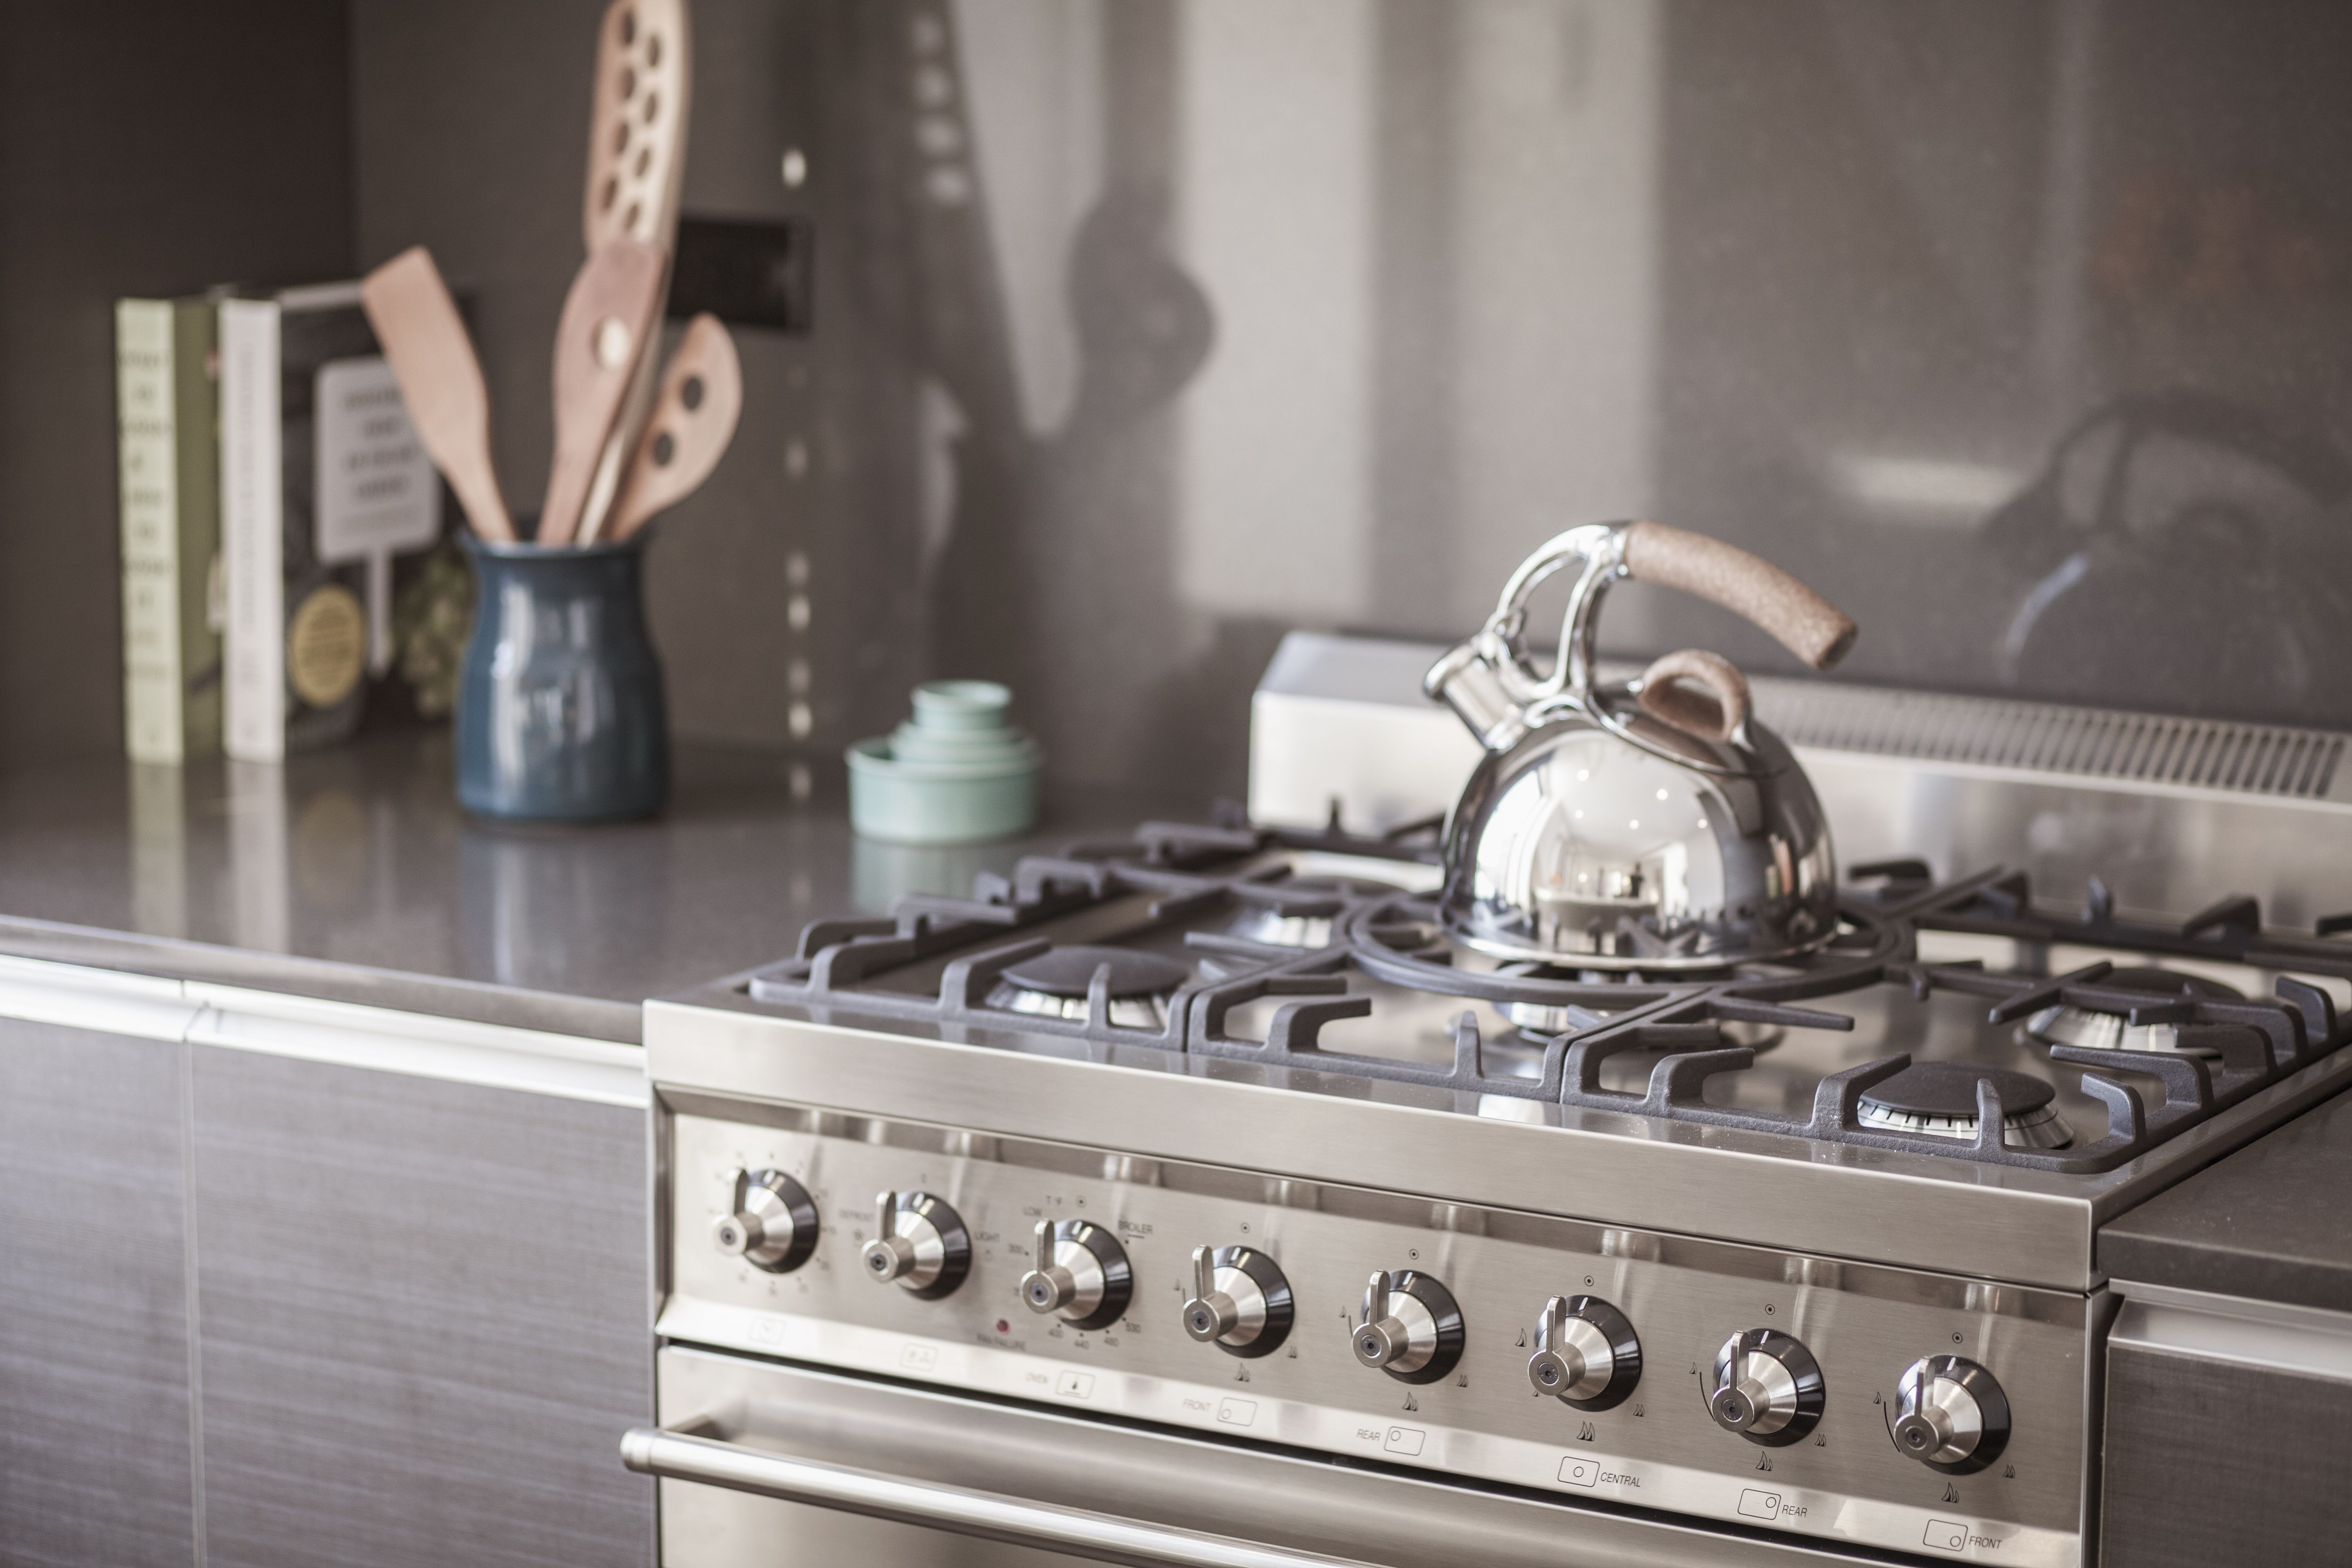 How To Clean a Cooktop